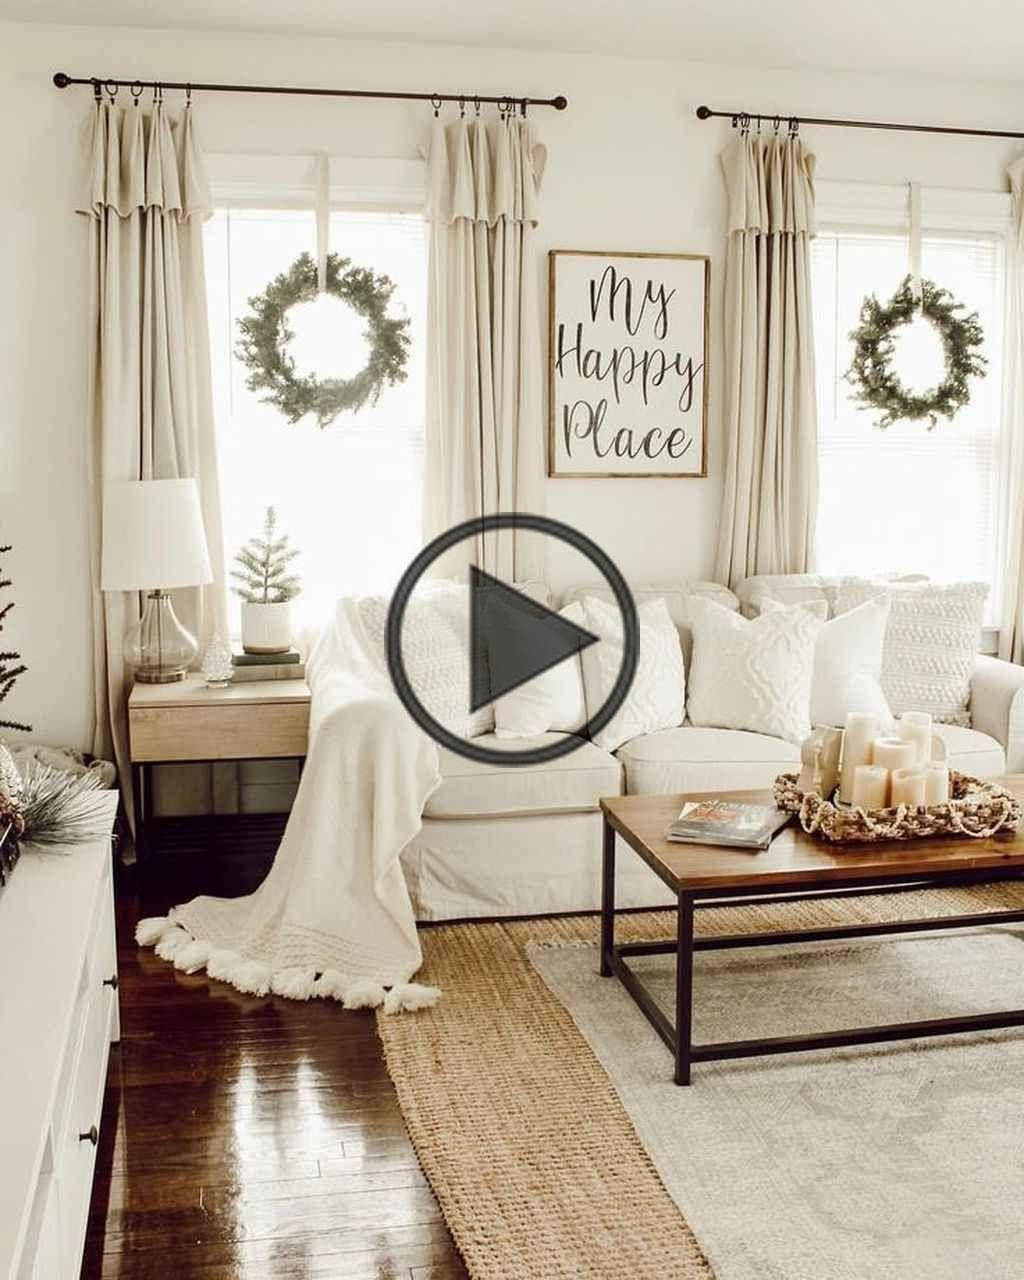 85 Beautiful Farmhouse Living Room Curtains Decor Ideas Curtains Living Room Christmas Decorations Living Room Home Decor